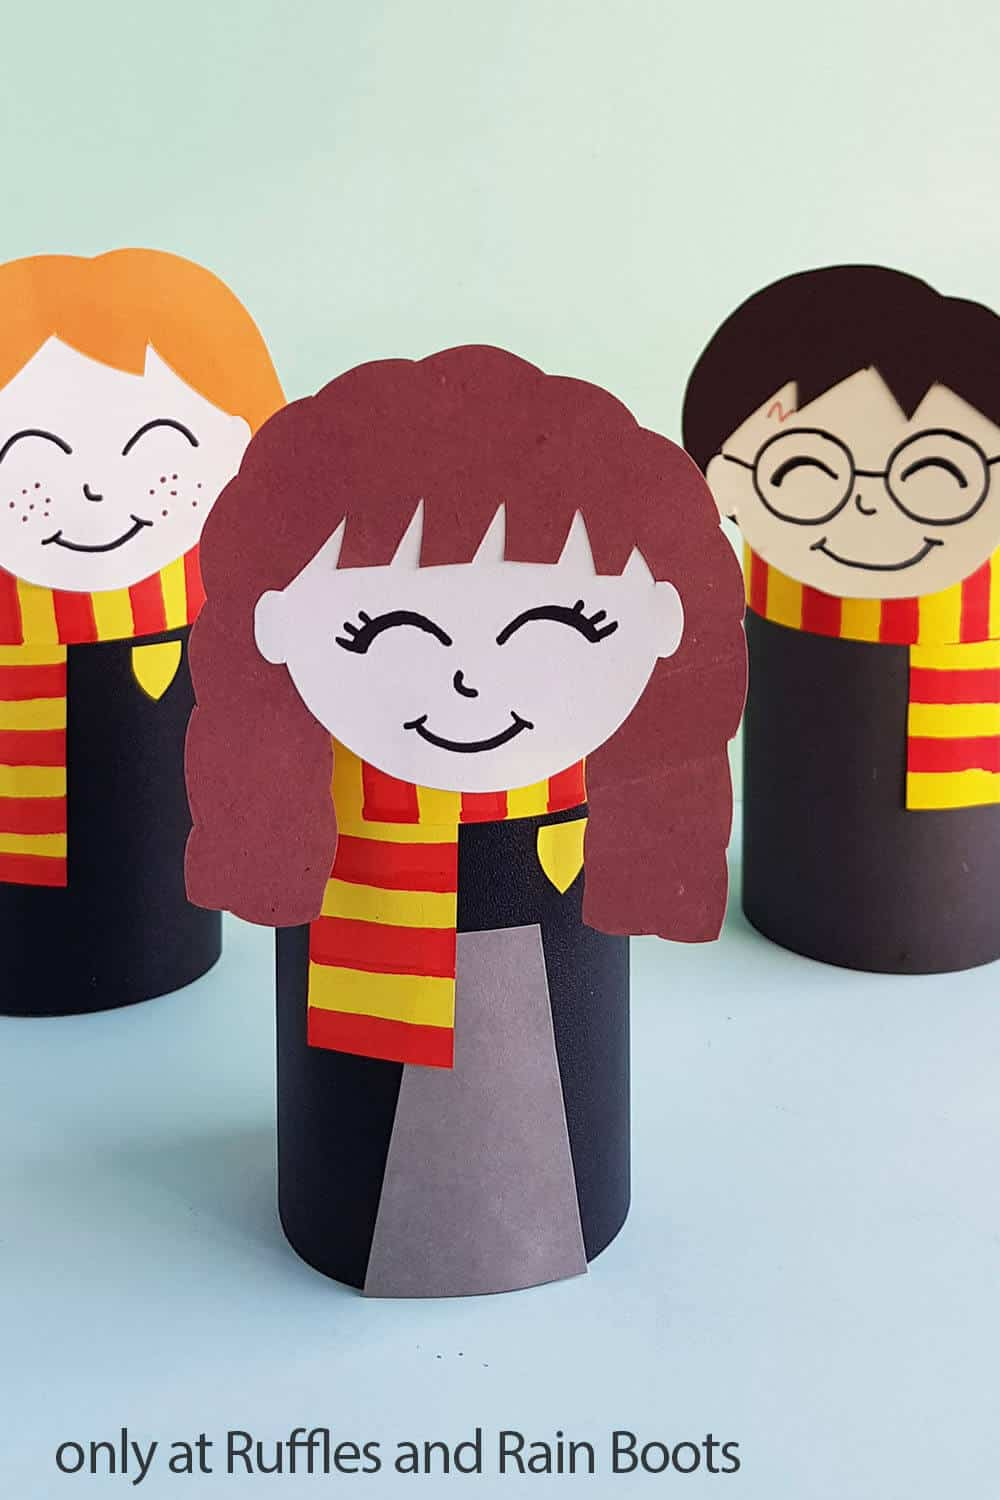 hermione paper craft doll with harry potter doll and ron weasly doll